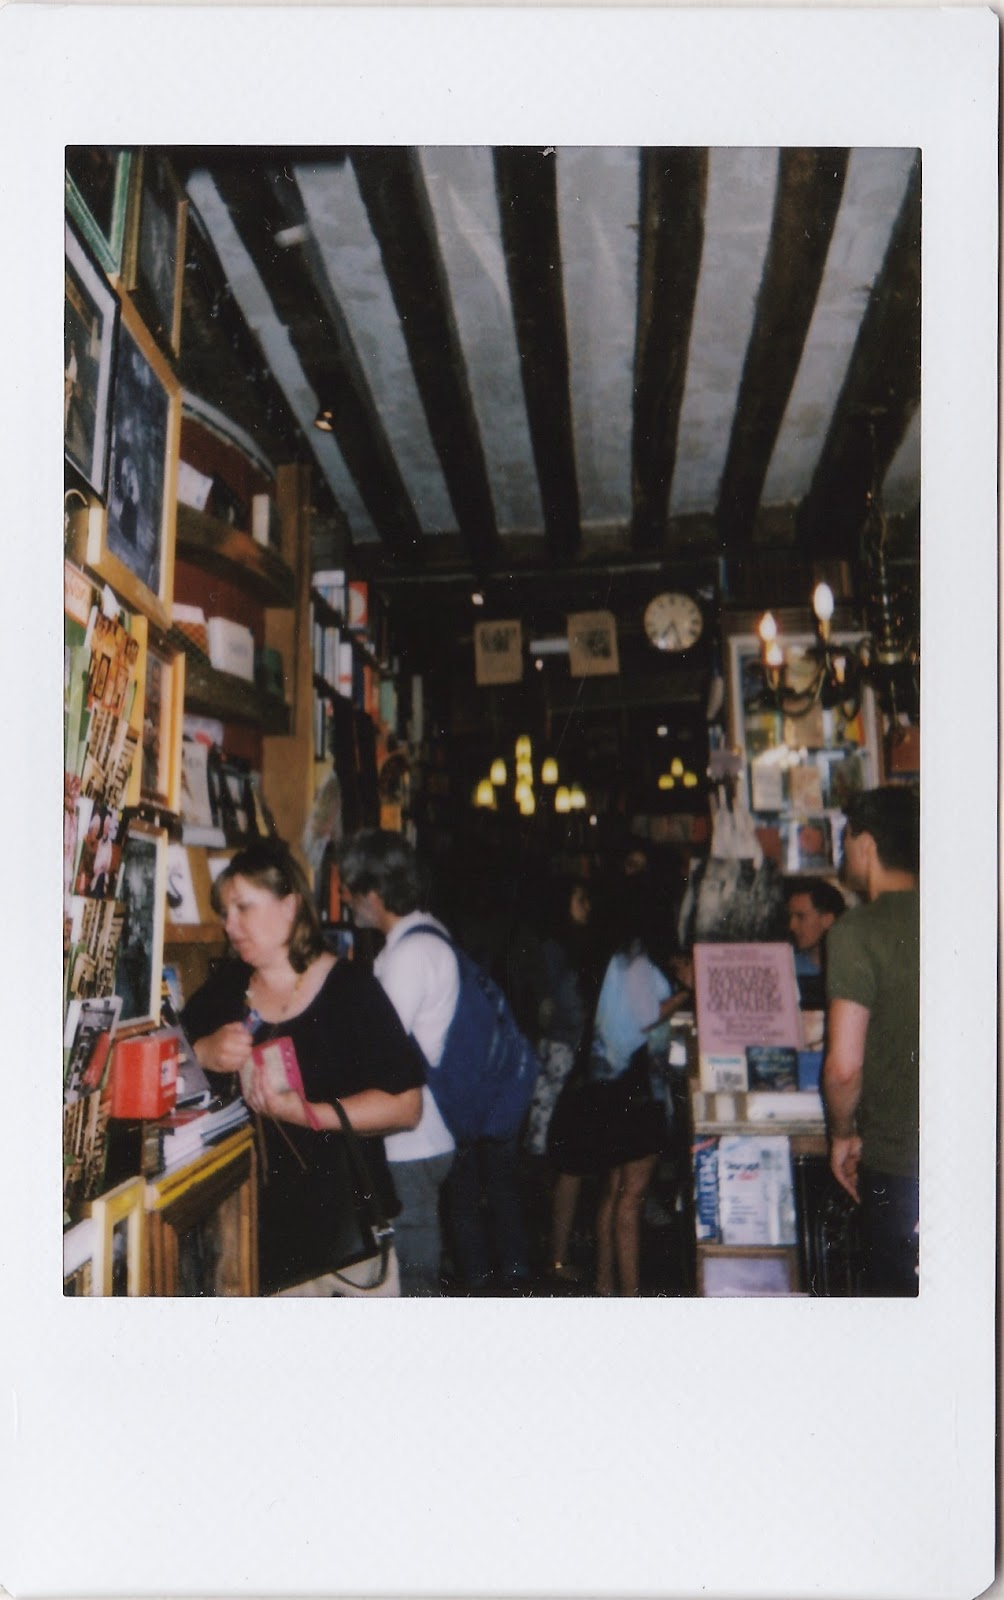 shakespeare and company polaroid